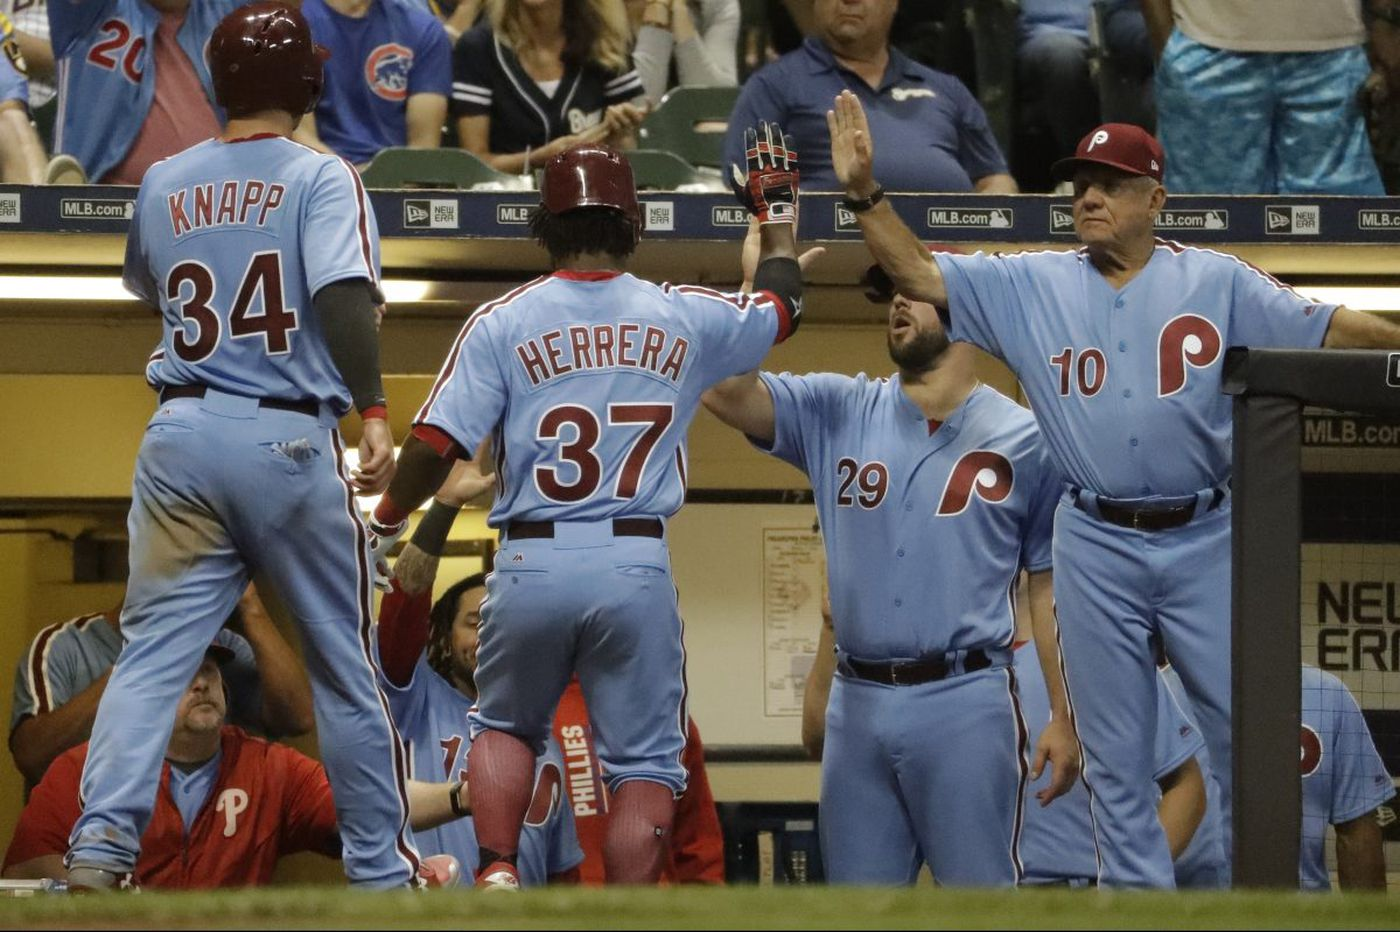 Phillies to wear powder blue uniforms at times this season fe9c42aaa21